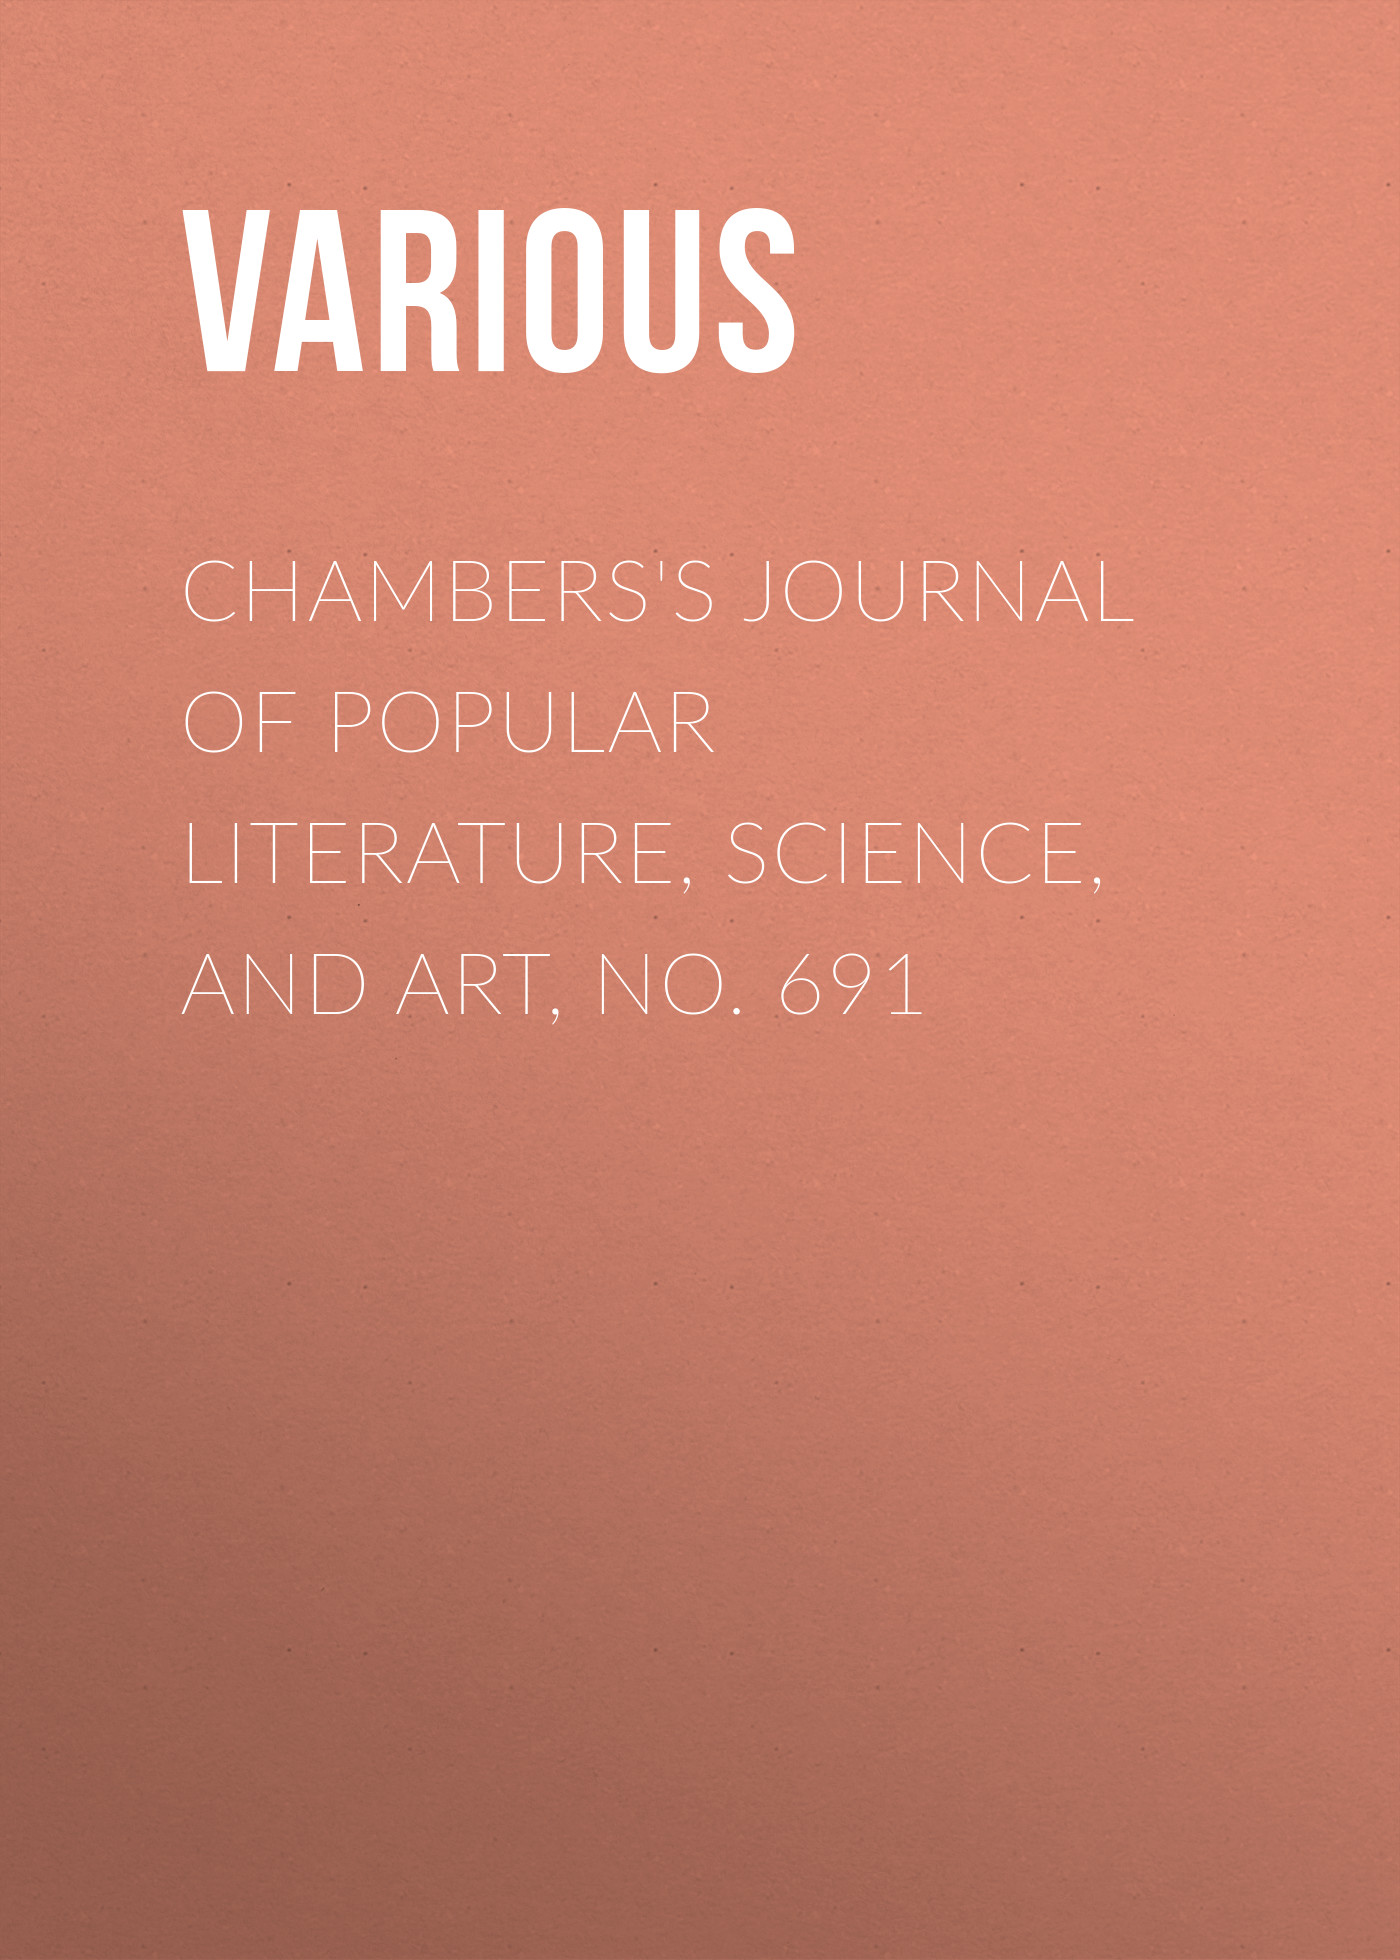 Chambers's Journal of Popular Literature, Science, and Art, No. 691